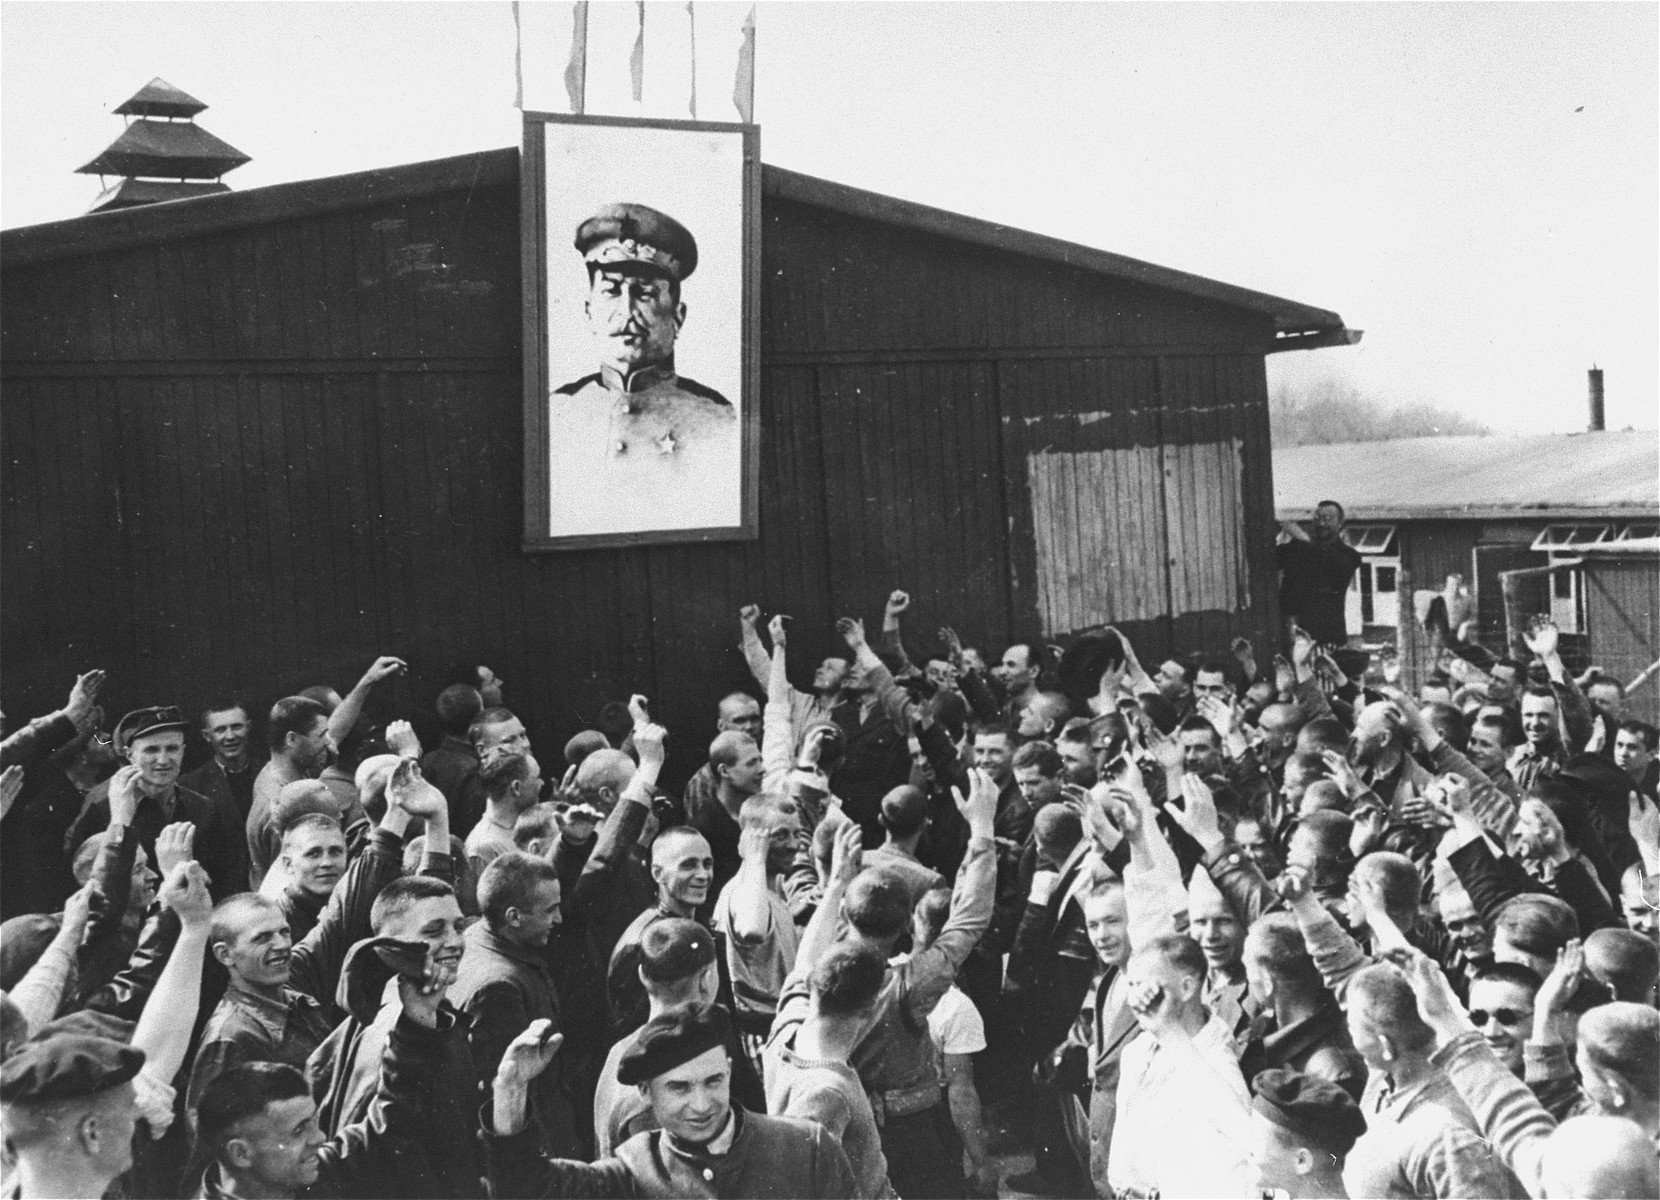 Survivors in Buchenwald cheer in front of a portrait of Stalin upon the liberation of the camp.